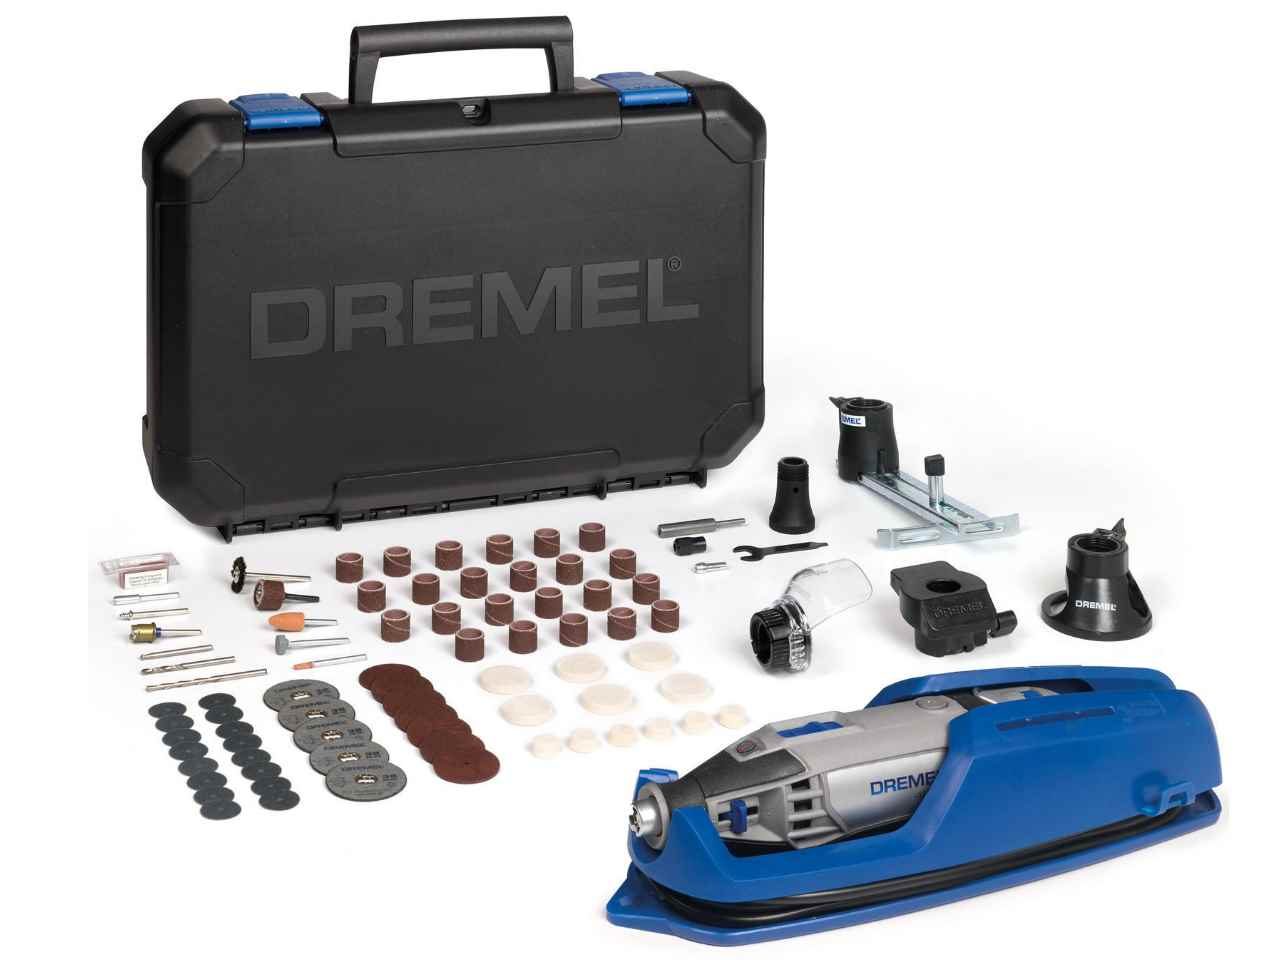 dremel f0134200jf 4200 4 75 ez wrap multi tool with attachments. Black Bedroom Furniture Sets. Home Design Ideas